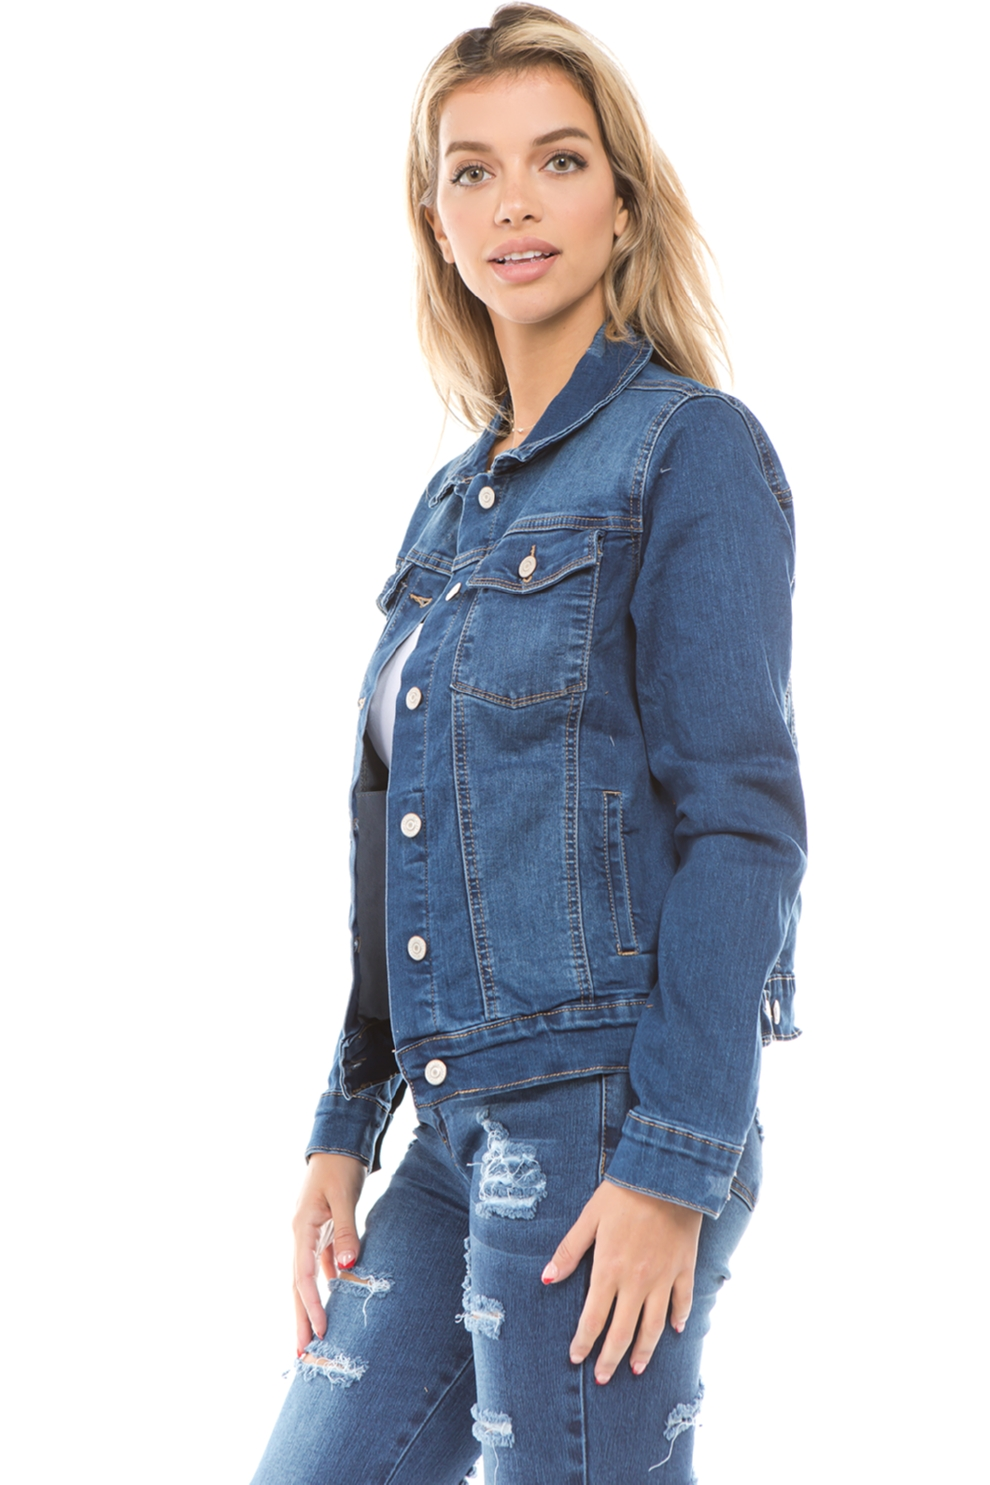 Women-039-s-Juniors-Boyfriend-Premium-Denim-Jackets-Long-Sleeve-Jean-Coats thumbnail 10